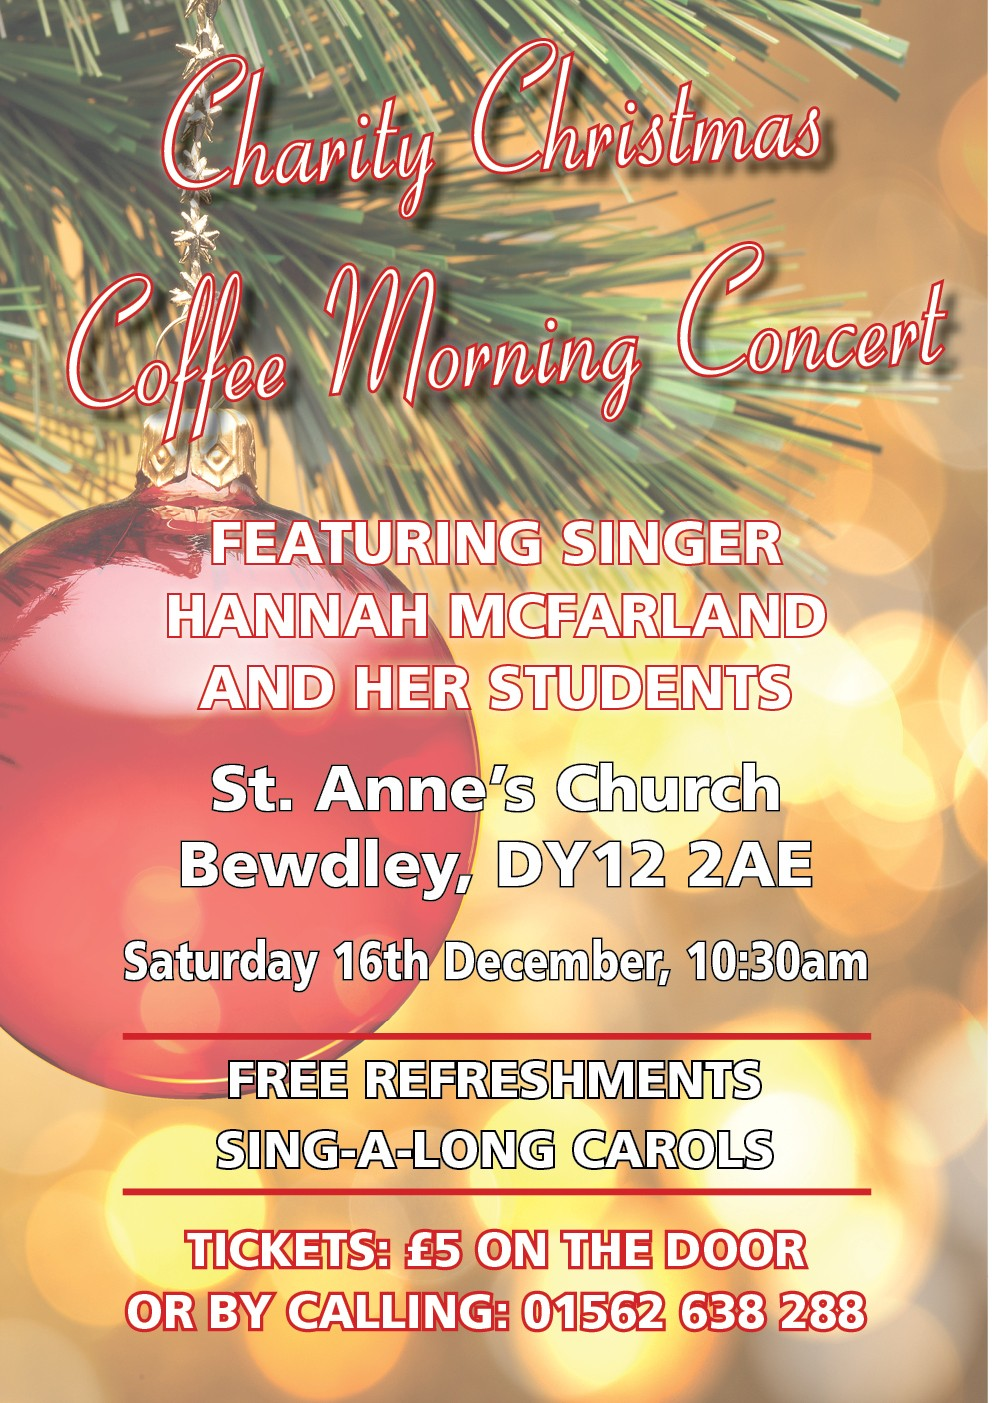 Charity Christmas Coffee Morning Concert